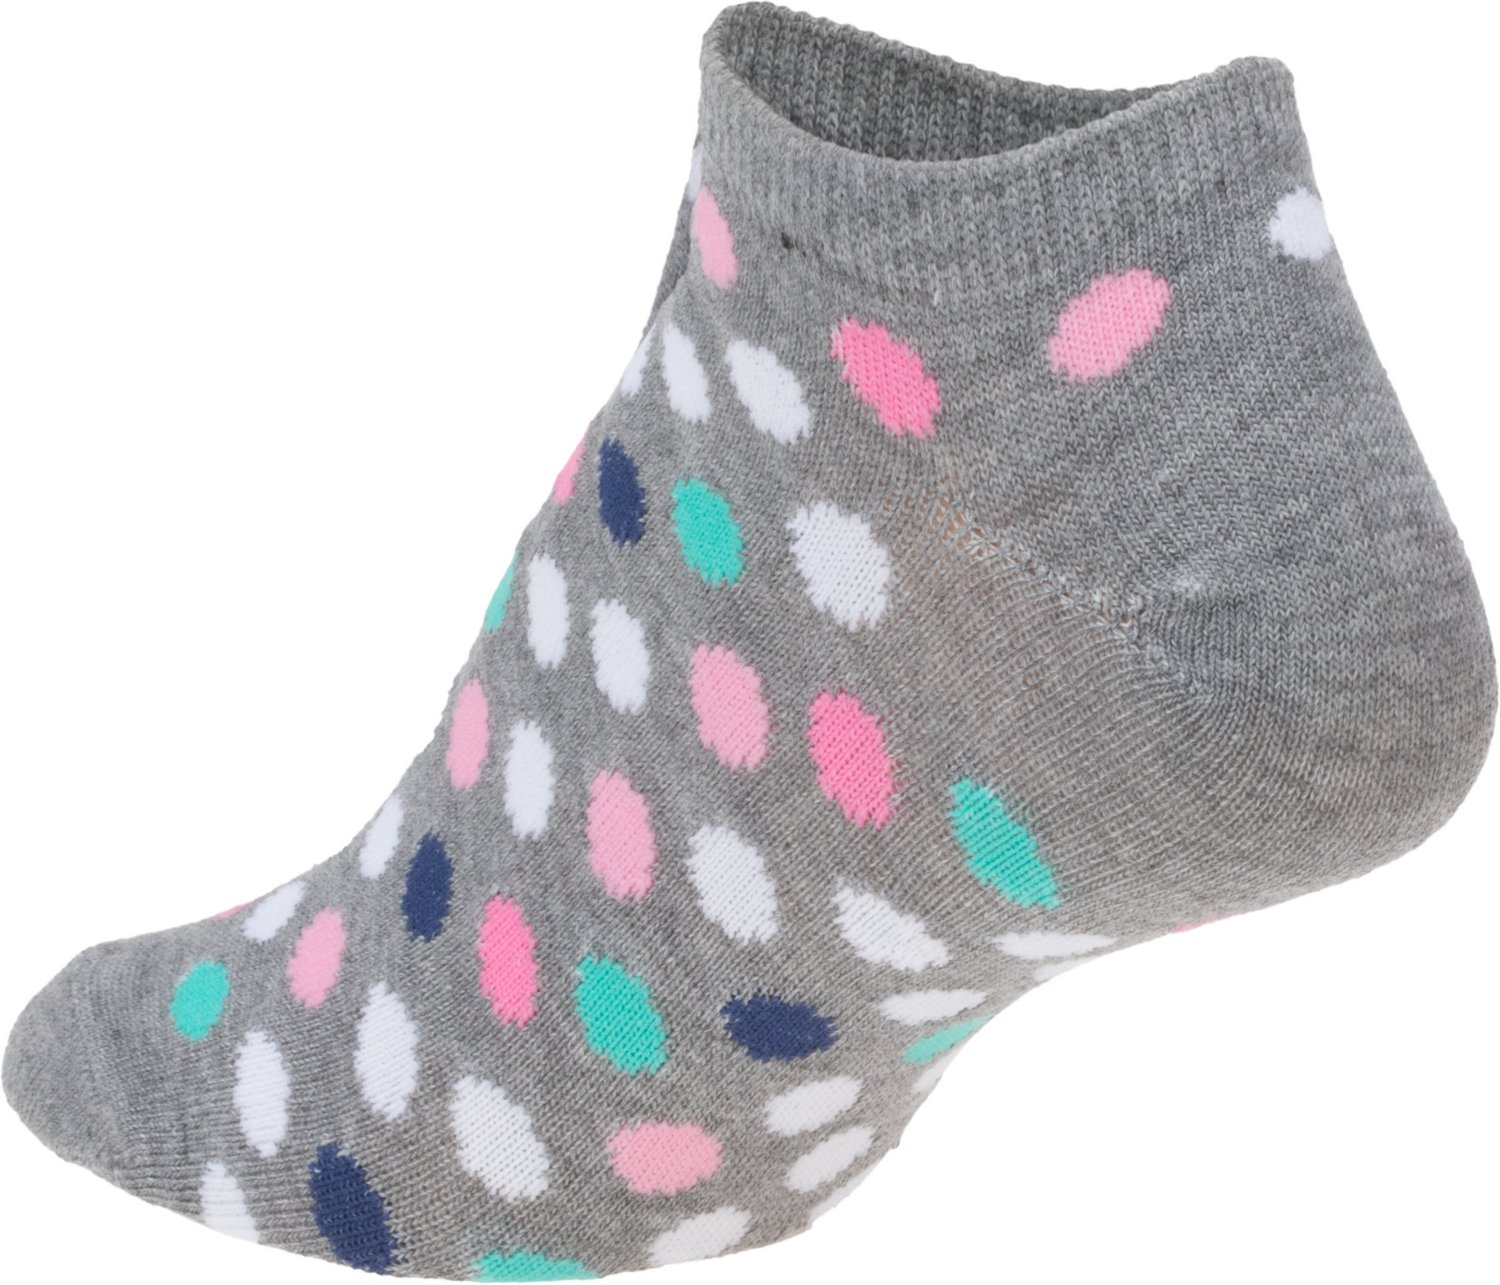 BCG Women's Cushioned No-Show Socks 3 Pack - view number 2